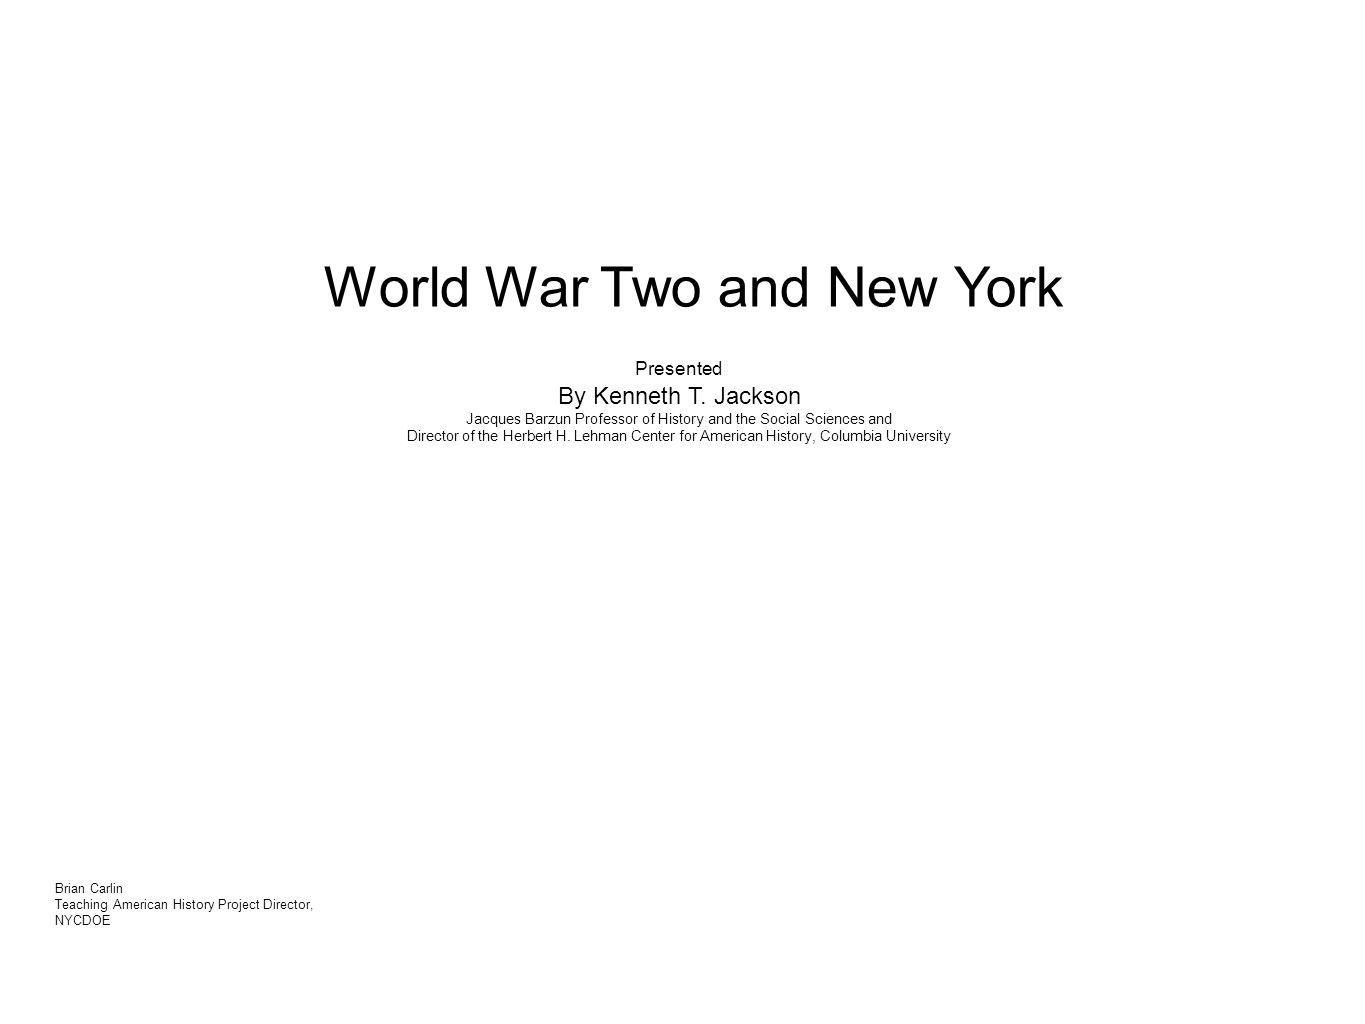 World War Two and New York